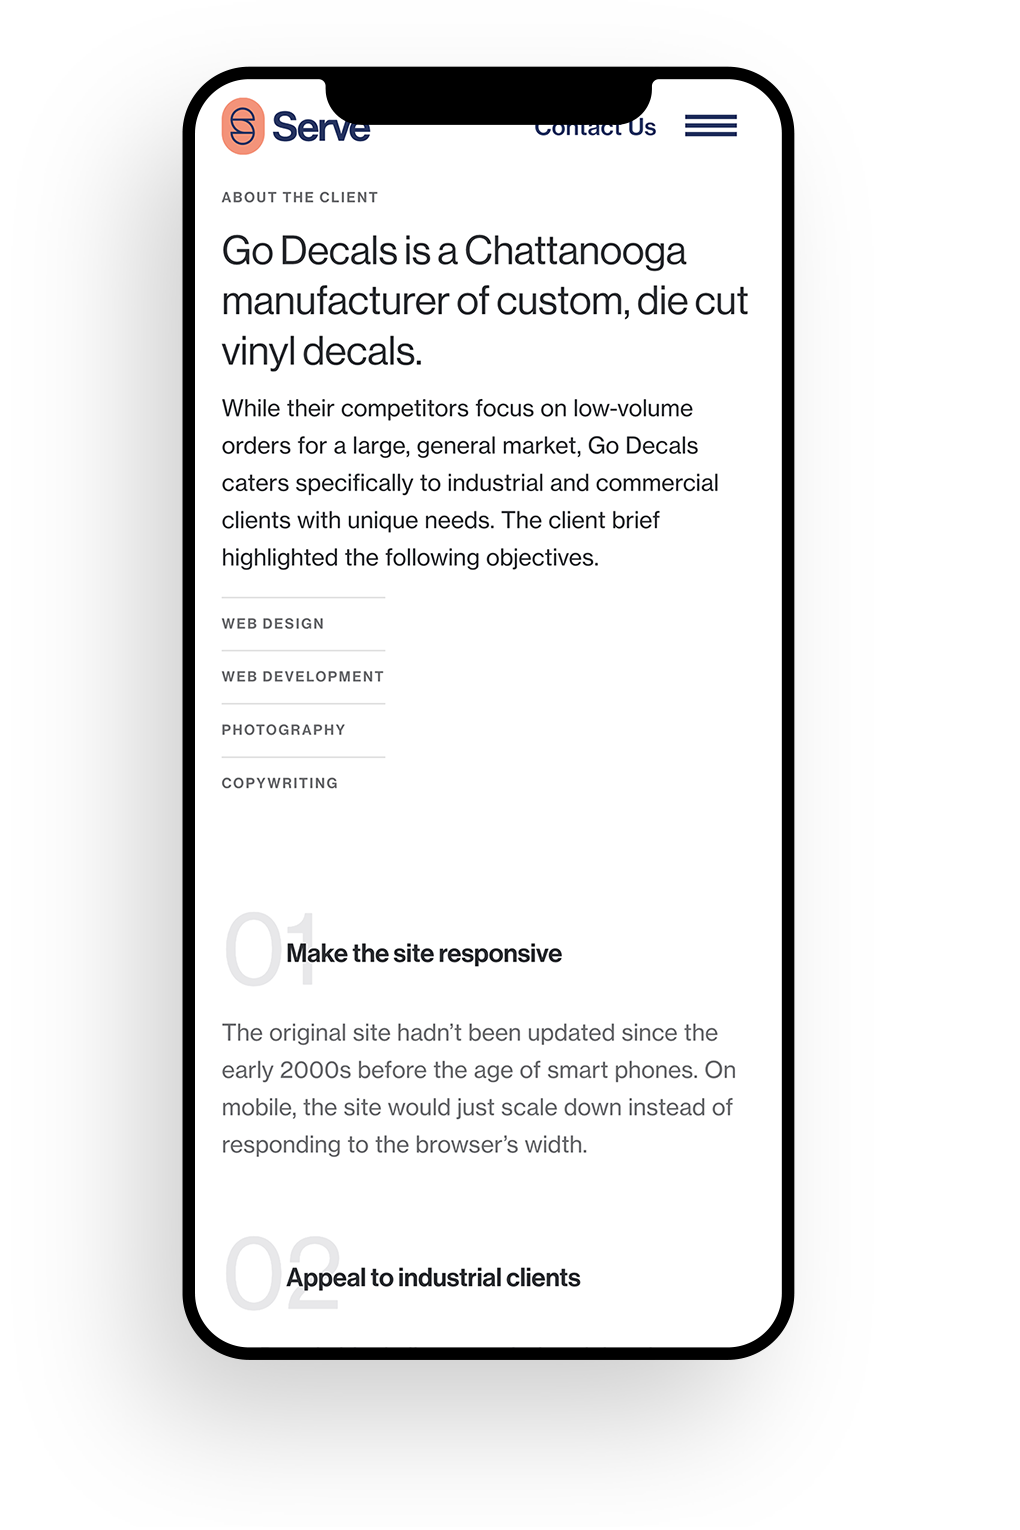 A mobile phone mockup of the Serve case study template page.